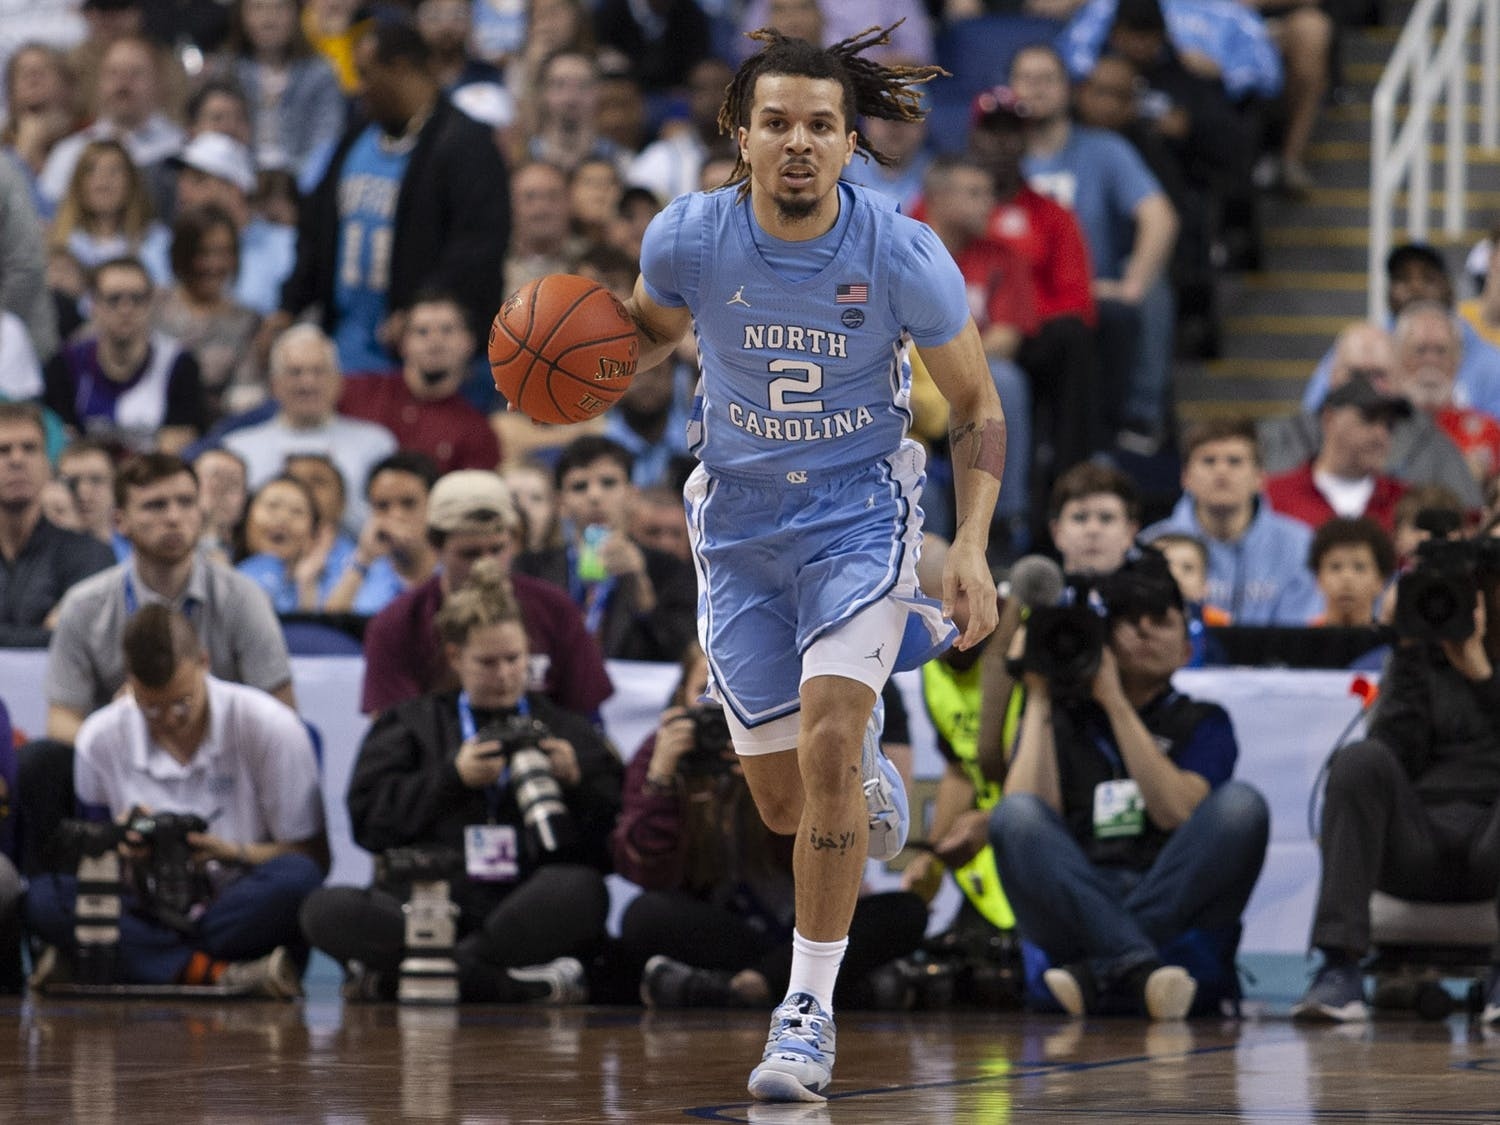 First-year guard Cole Anthony (2) dribbles during the first-round of the ACC tournament against Virginia Tech in the Greensboro Coliseum Complex on Tuesday, March 10, 2020. UNC beat Virginia Tech 78-56.